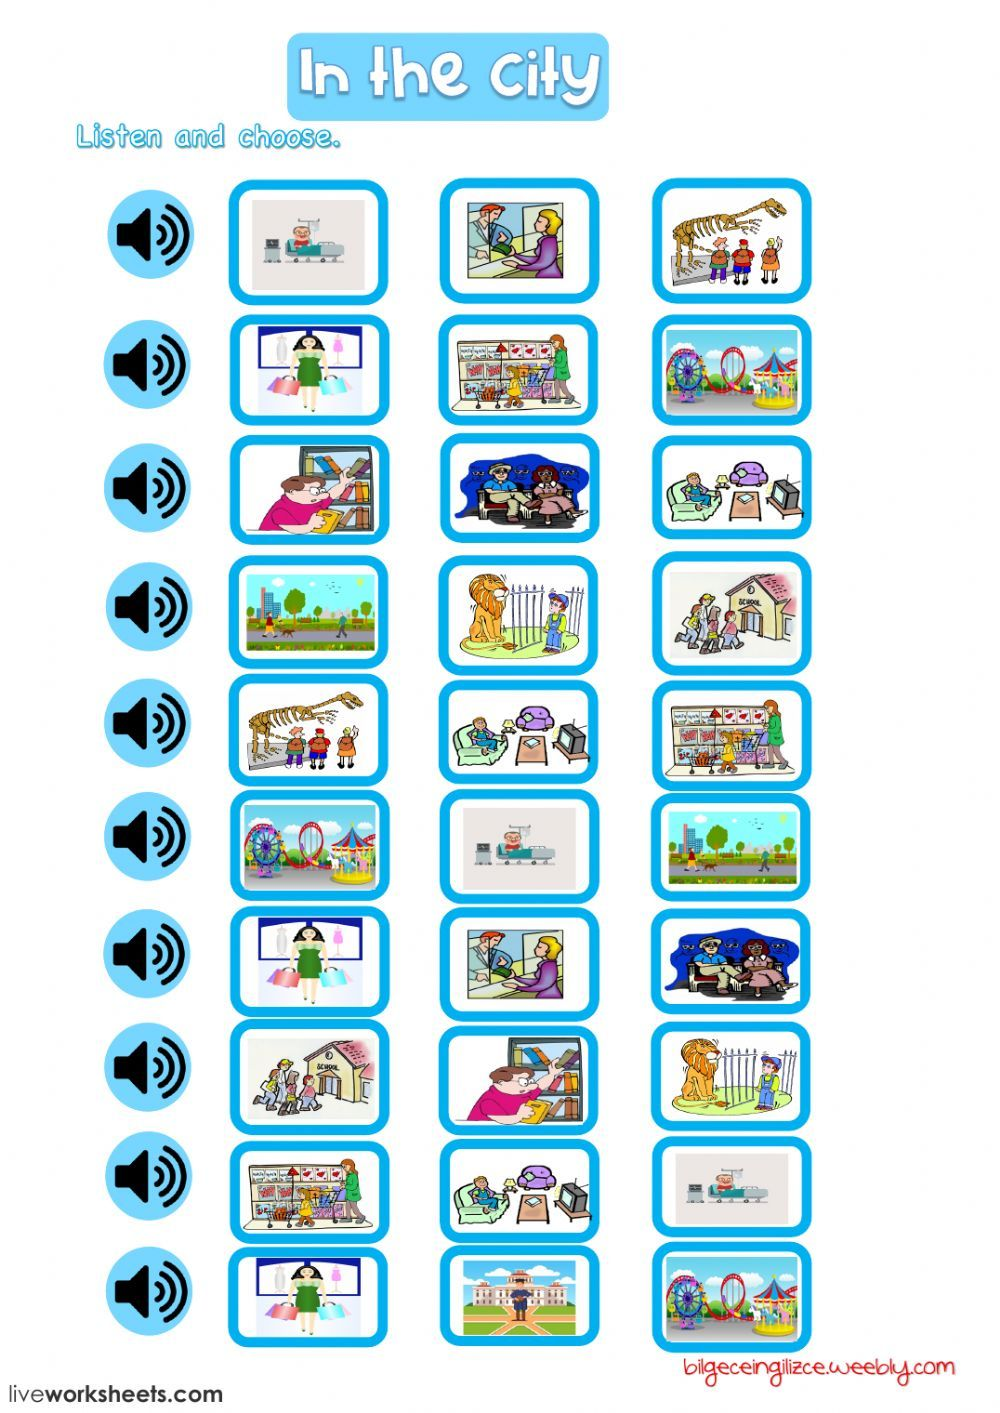 Places In The City Interactive And Downloadable Worksheet You Can Do The Exercises On Worksheets English Grammar Worksheets English As A Second Language Esl [ 1413 x 1000 Pixel ]